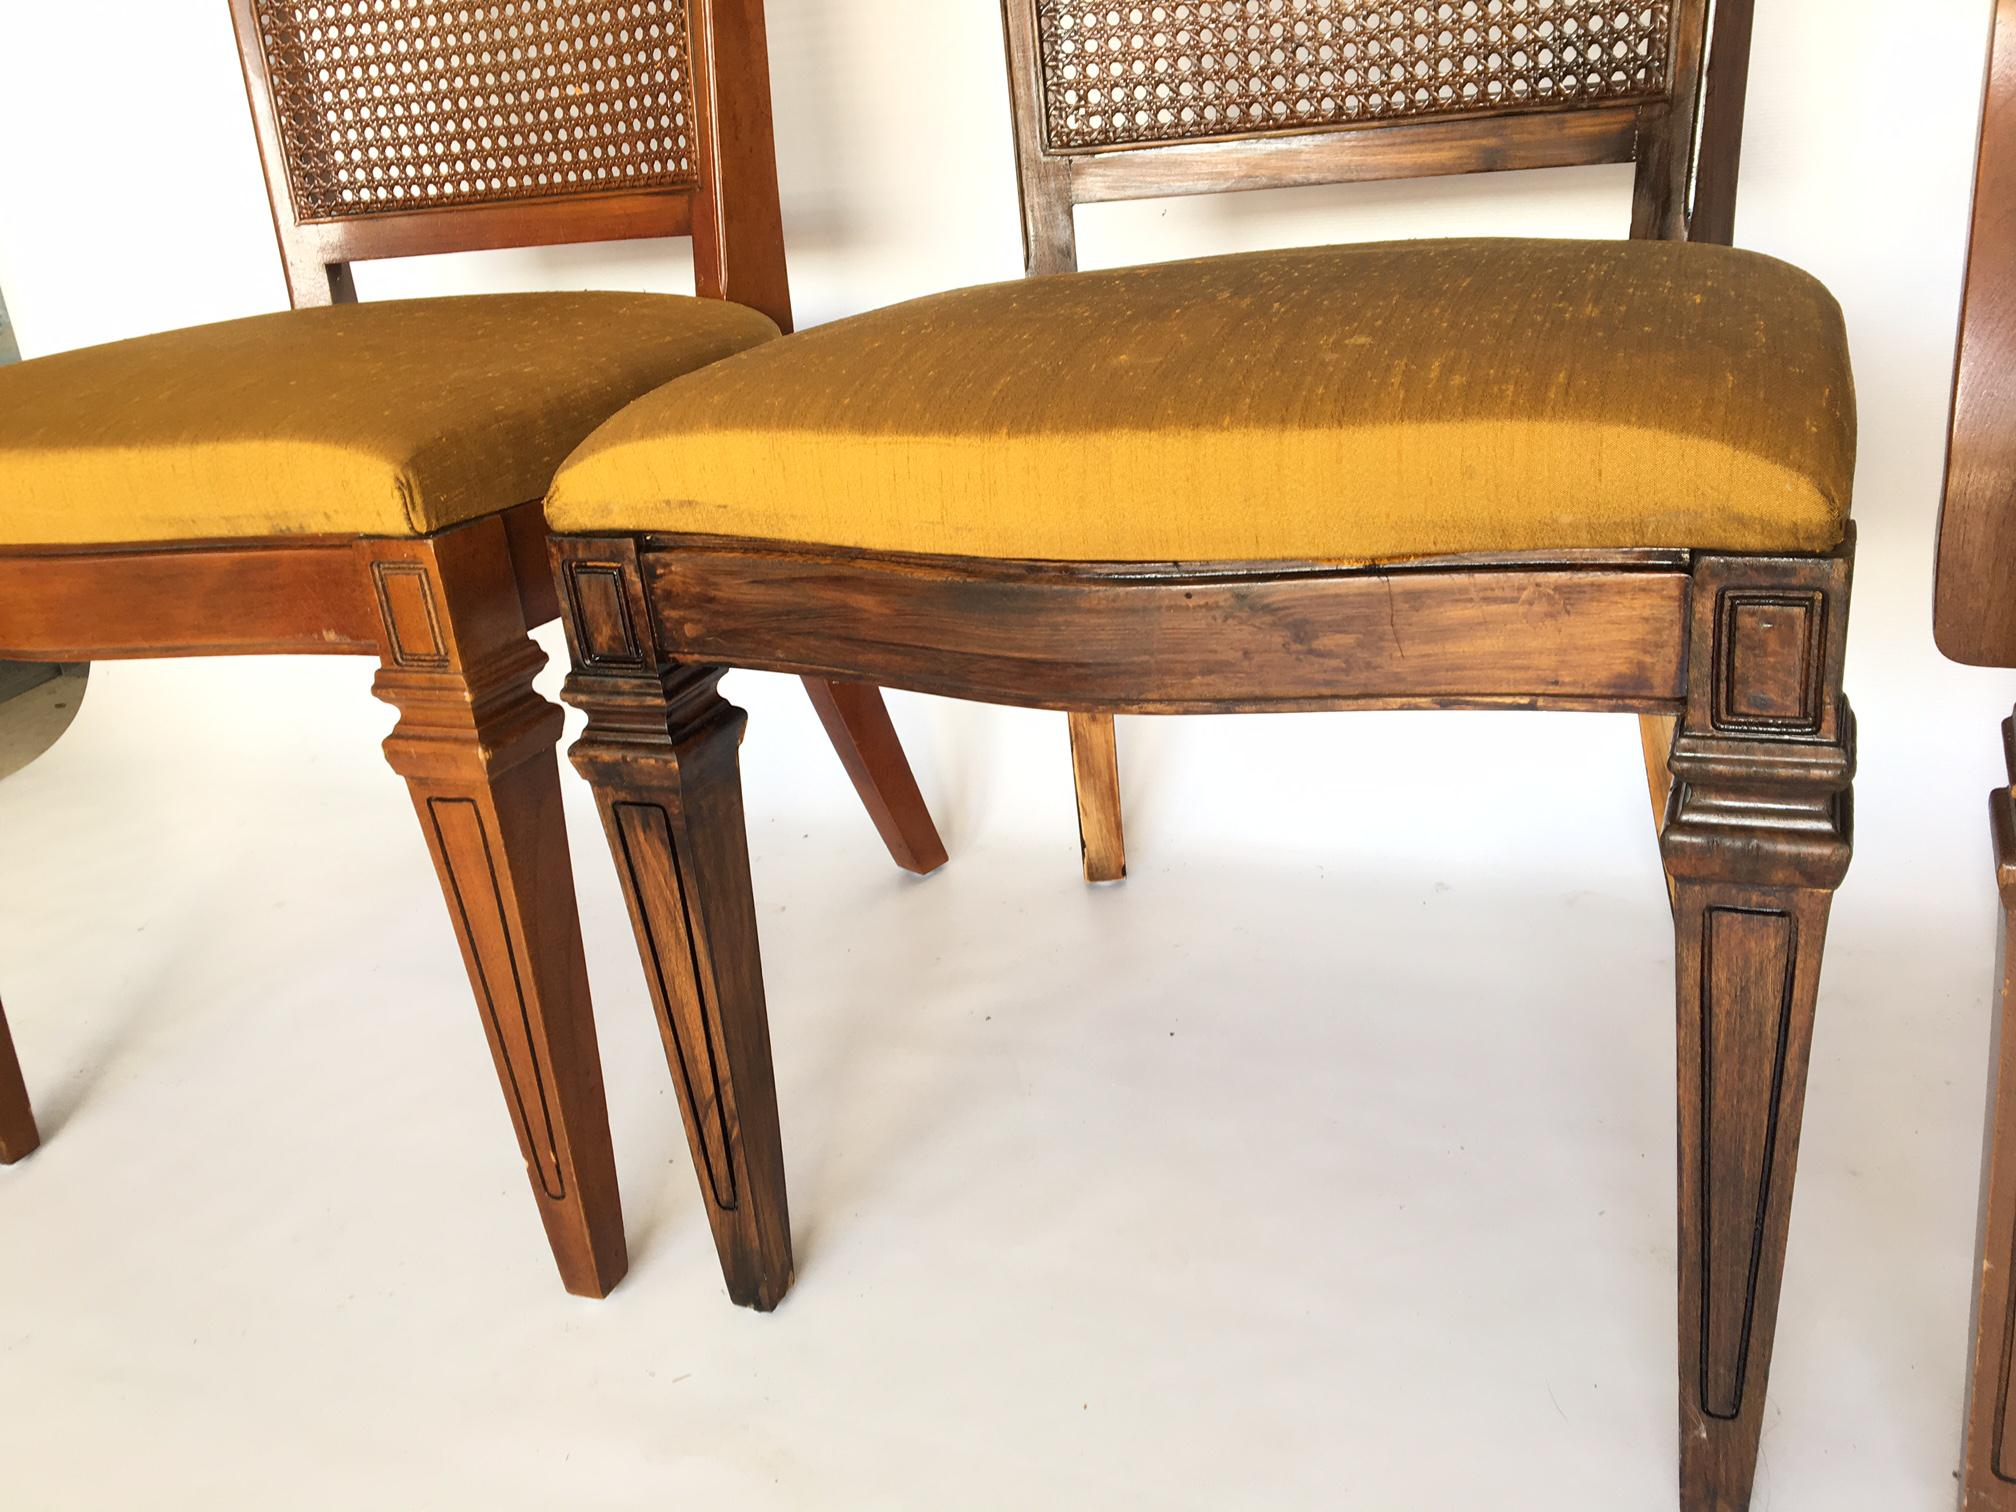 Century Furniture Hibriten Cane Back Dining Chairs   Set Of 6   Image 3 Of 8